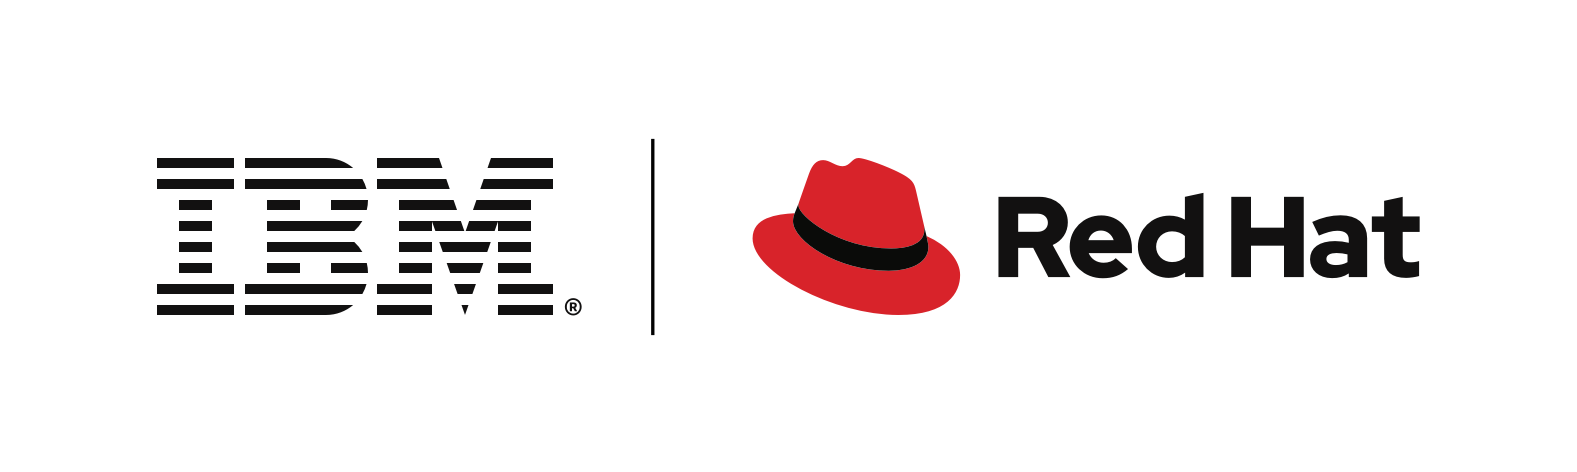 Red Hat IBM logo